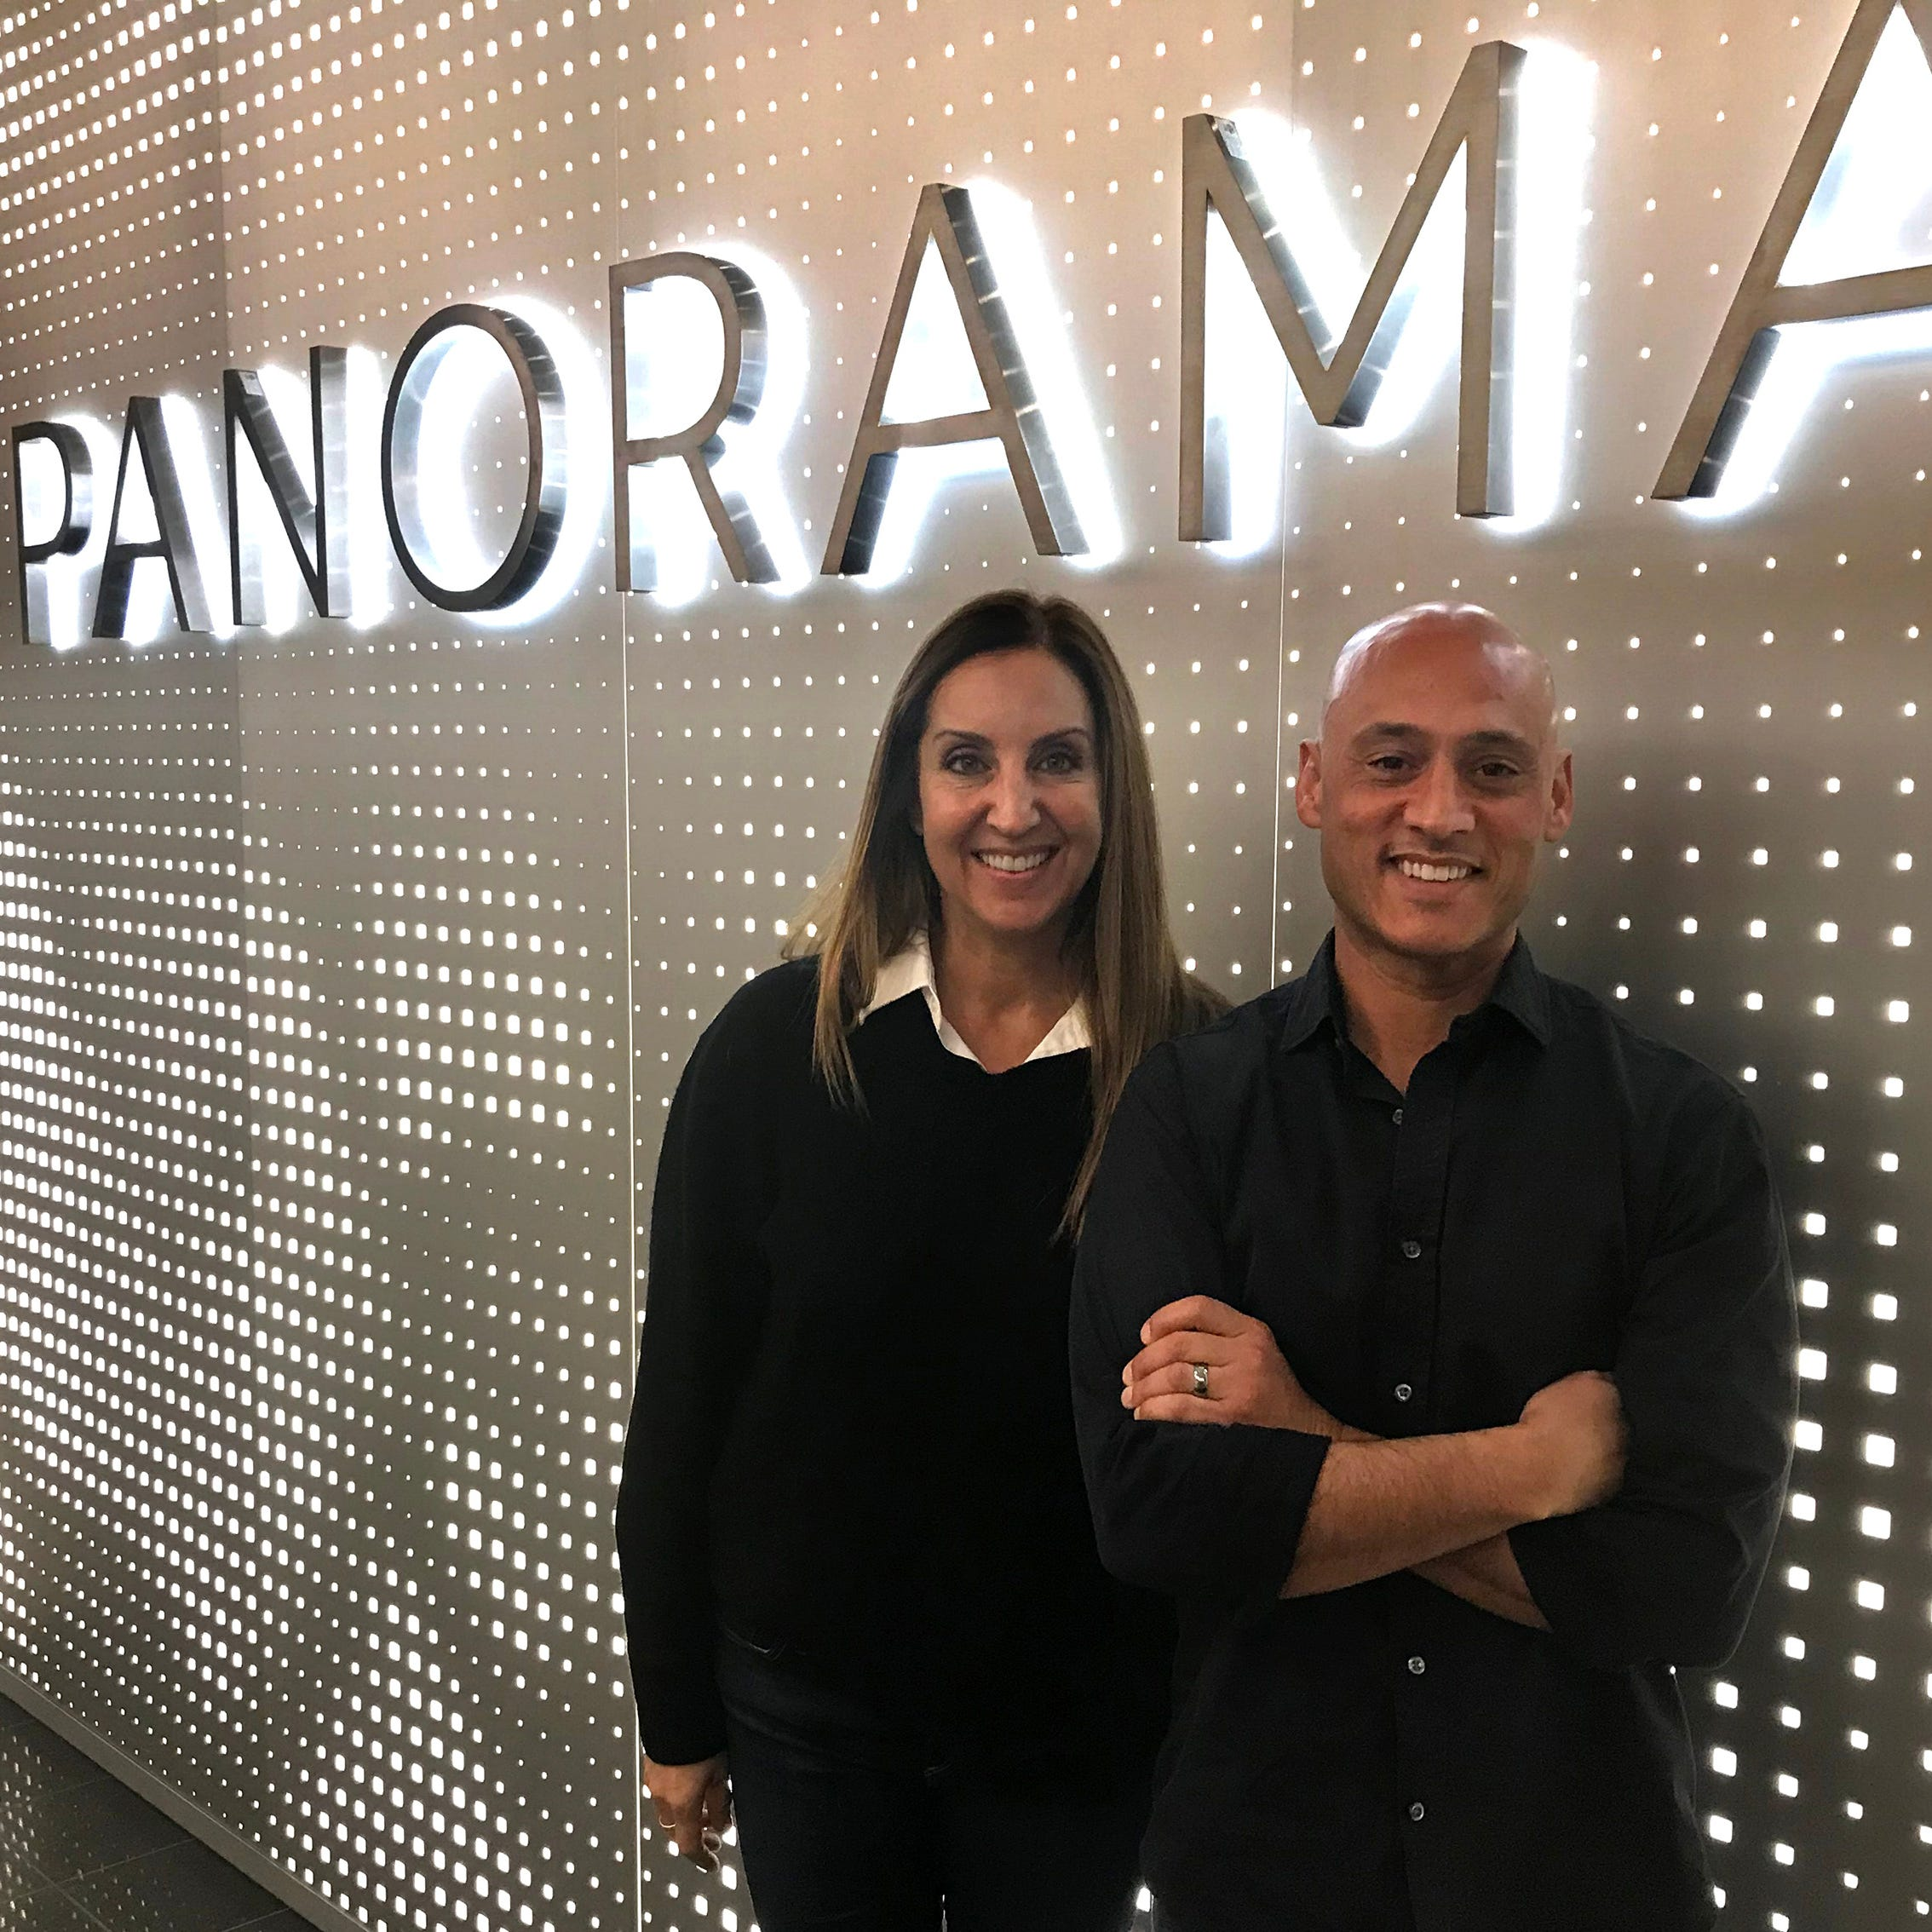 Joe and Angie Sorge bring their Hospitality Democracy customer service focus to Fiserv Forum